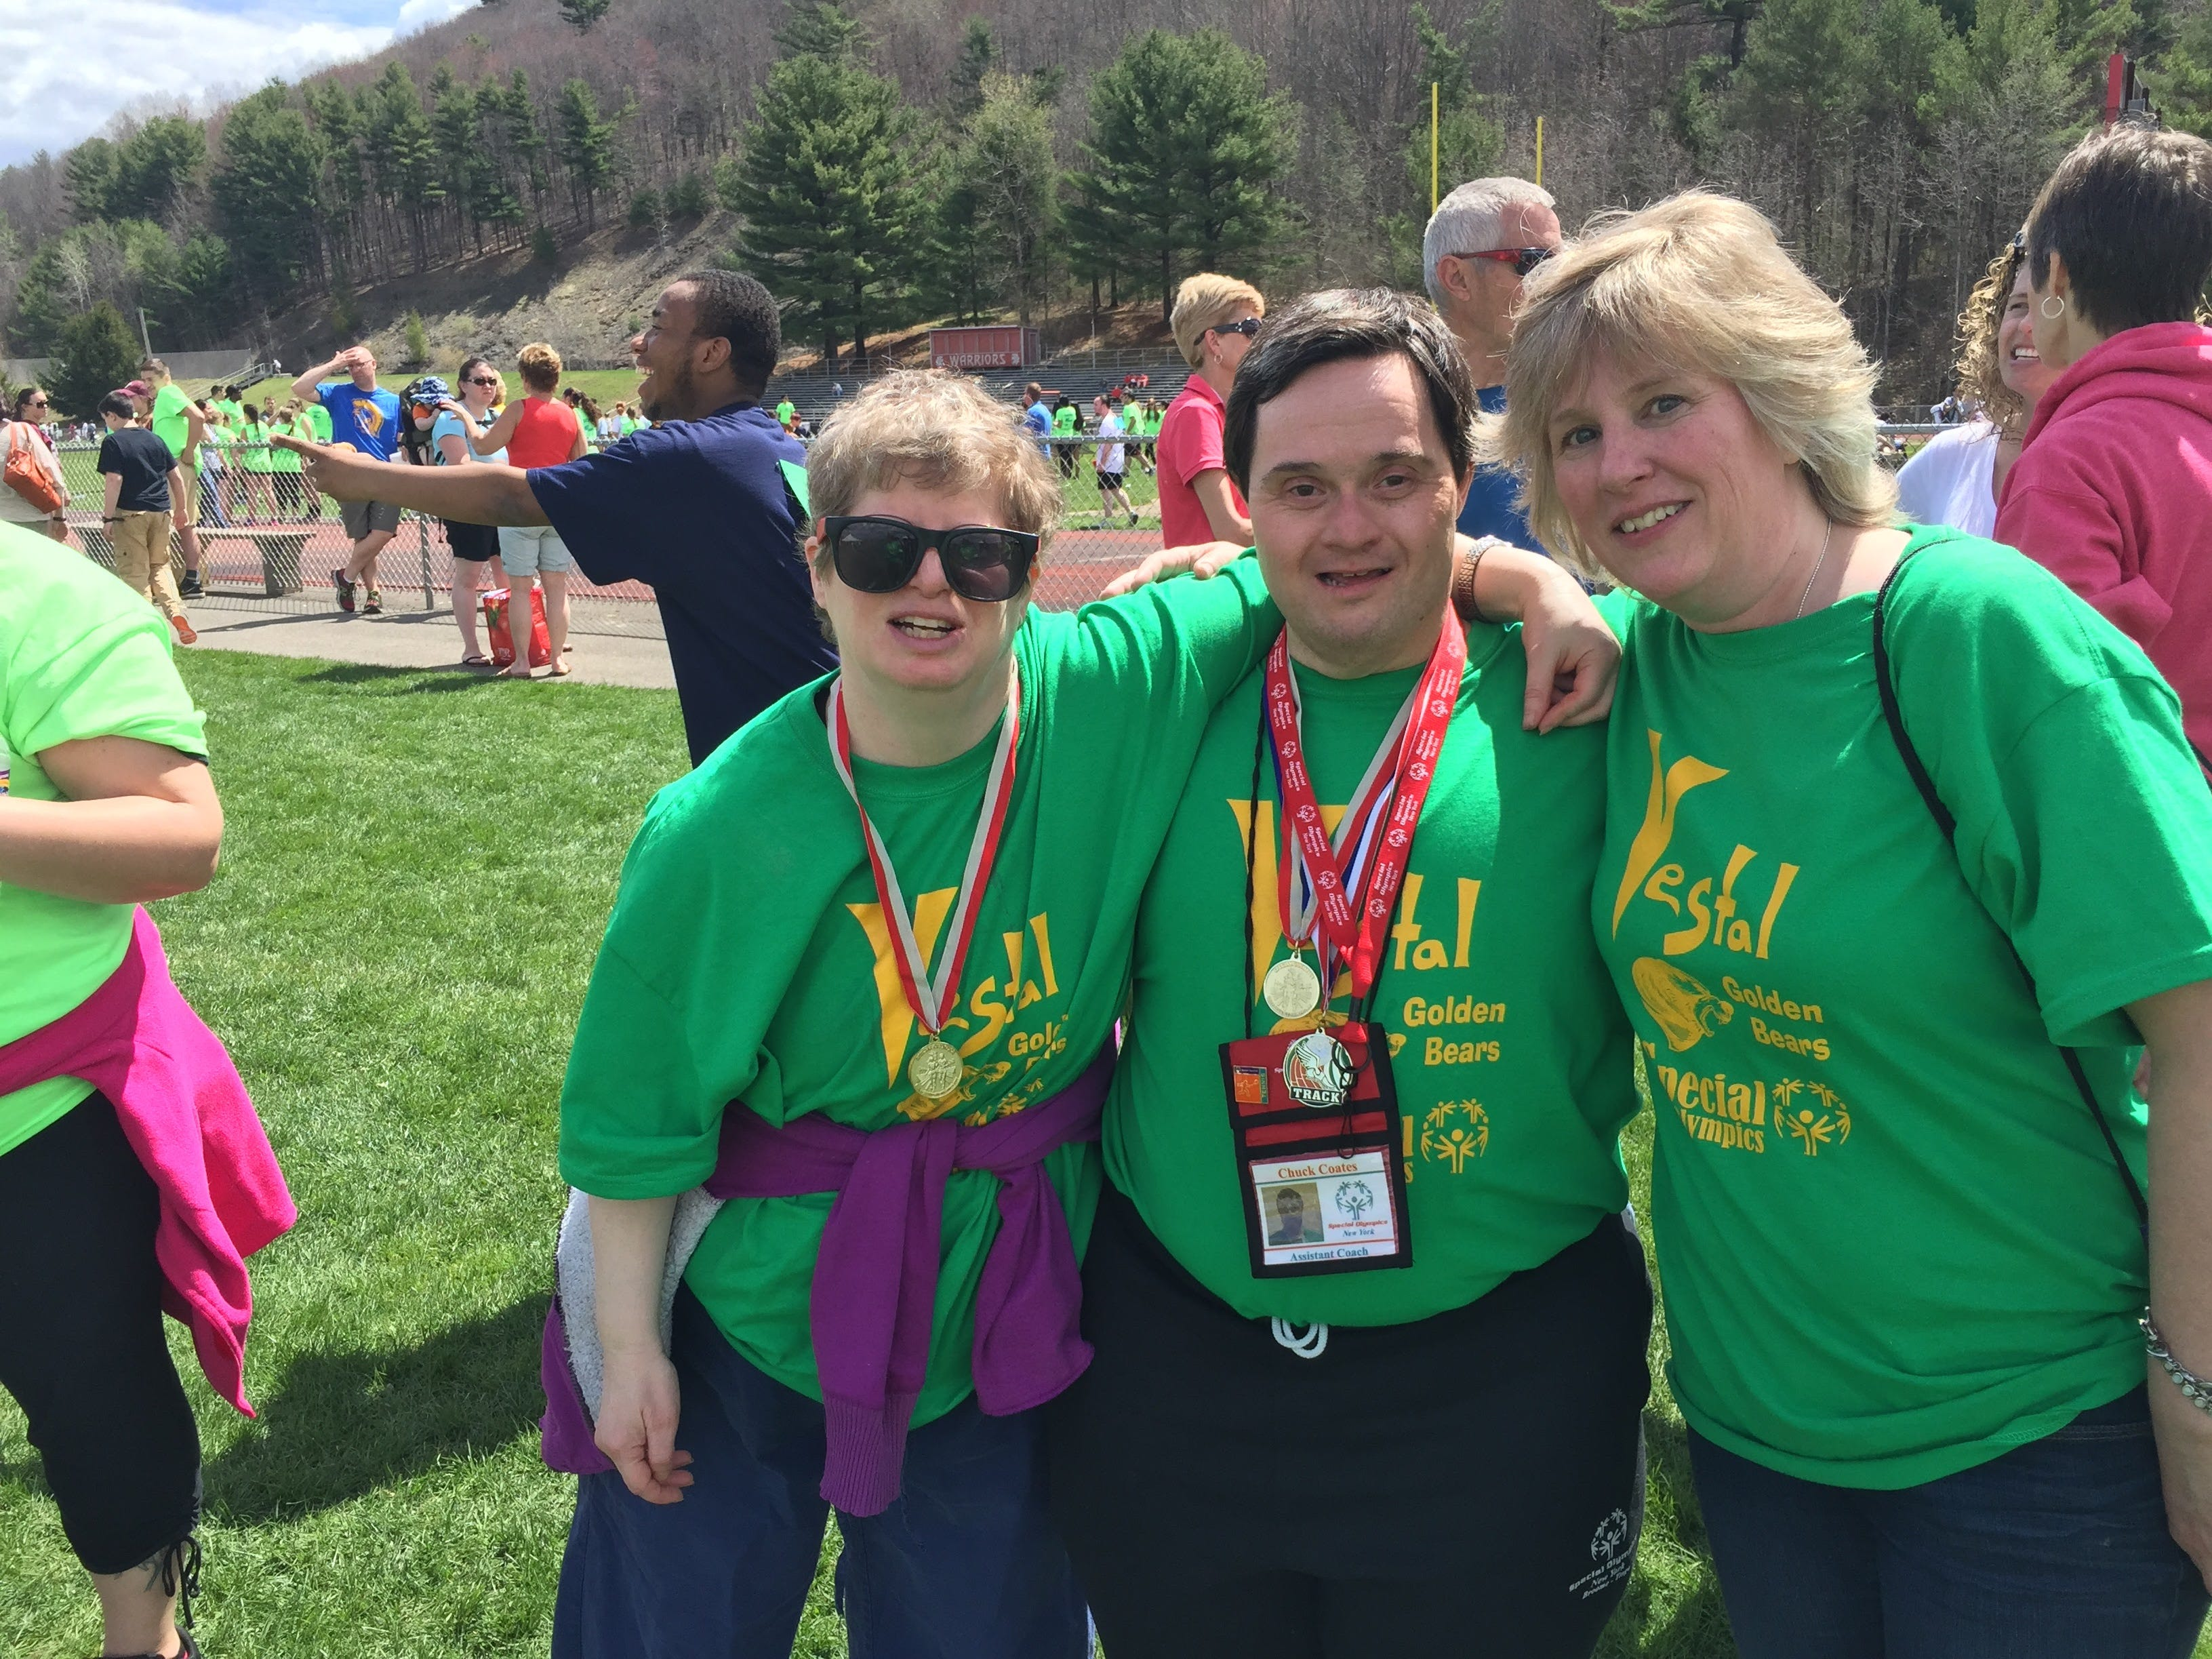 Jenny Sorber has been the Head Coach of the Special Olympics Vestal Team since 2005.